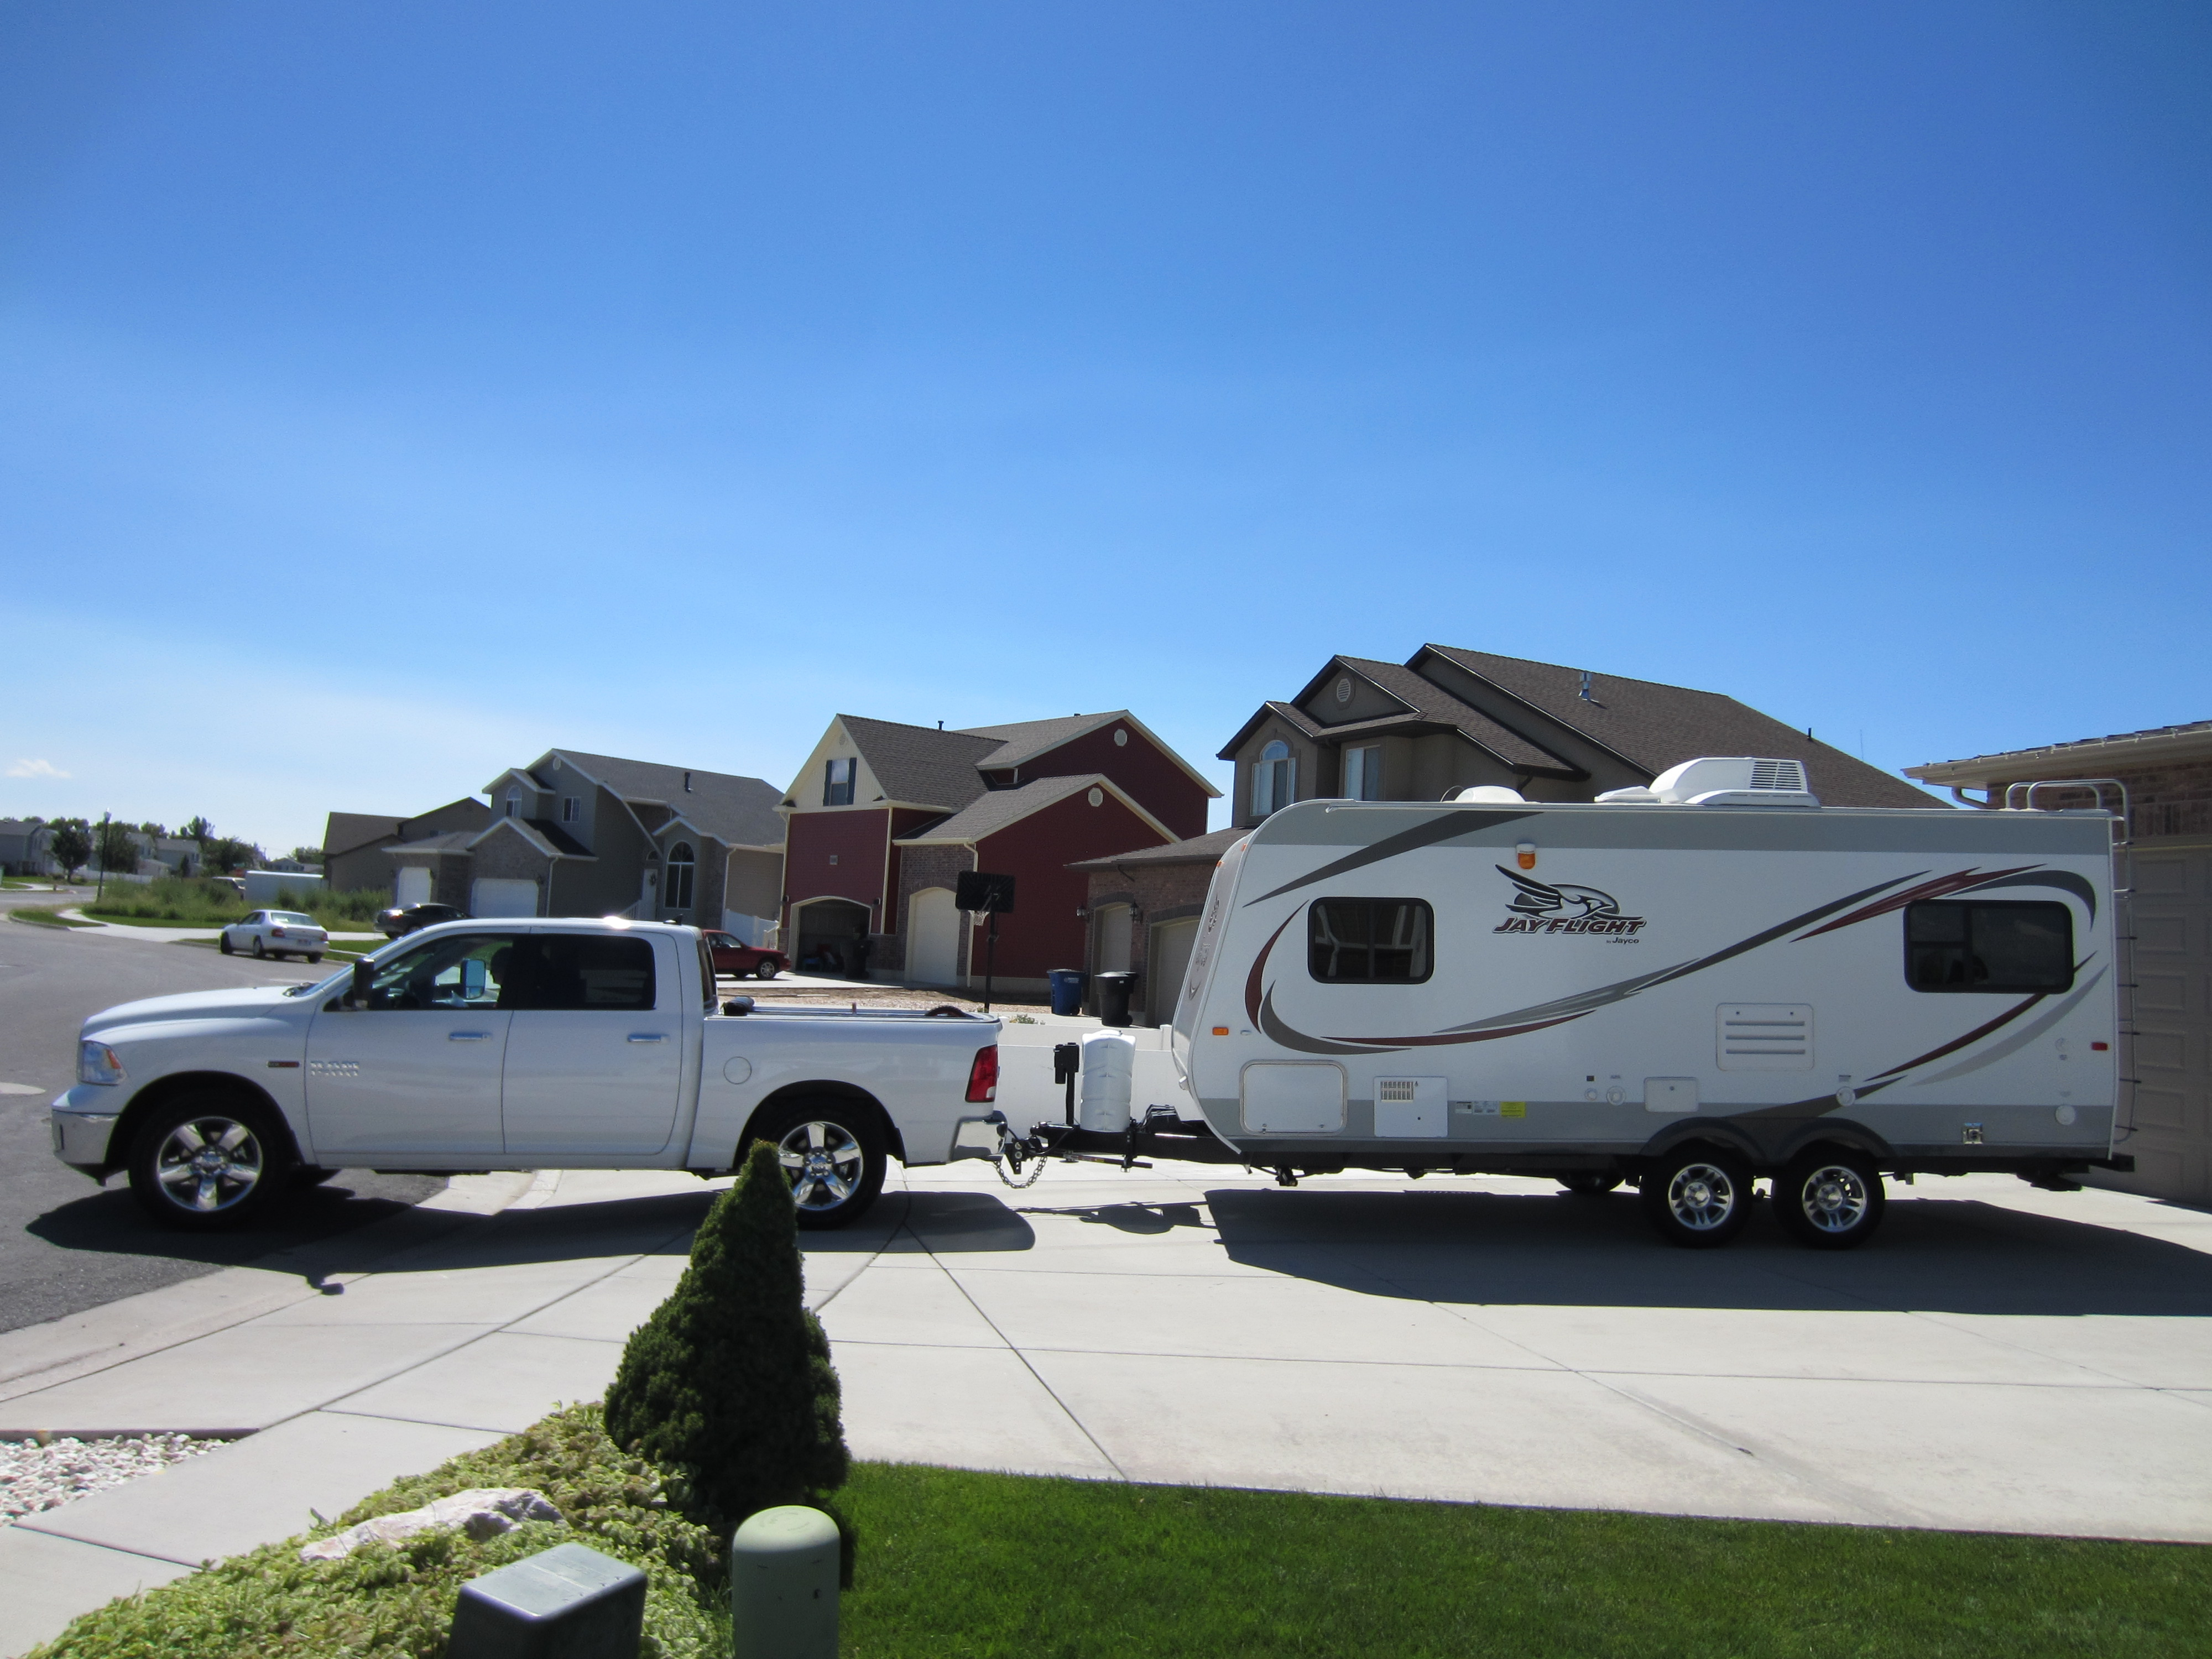 Fifth Wheel Tow Capacity Of 2019 F250 | 2019 Trucks